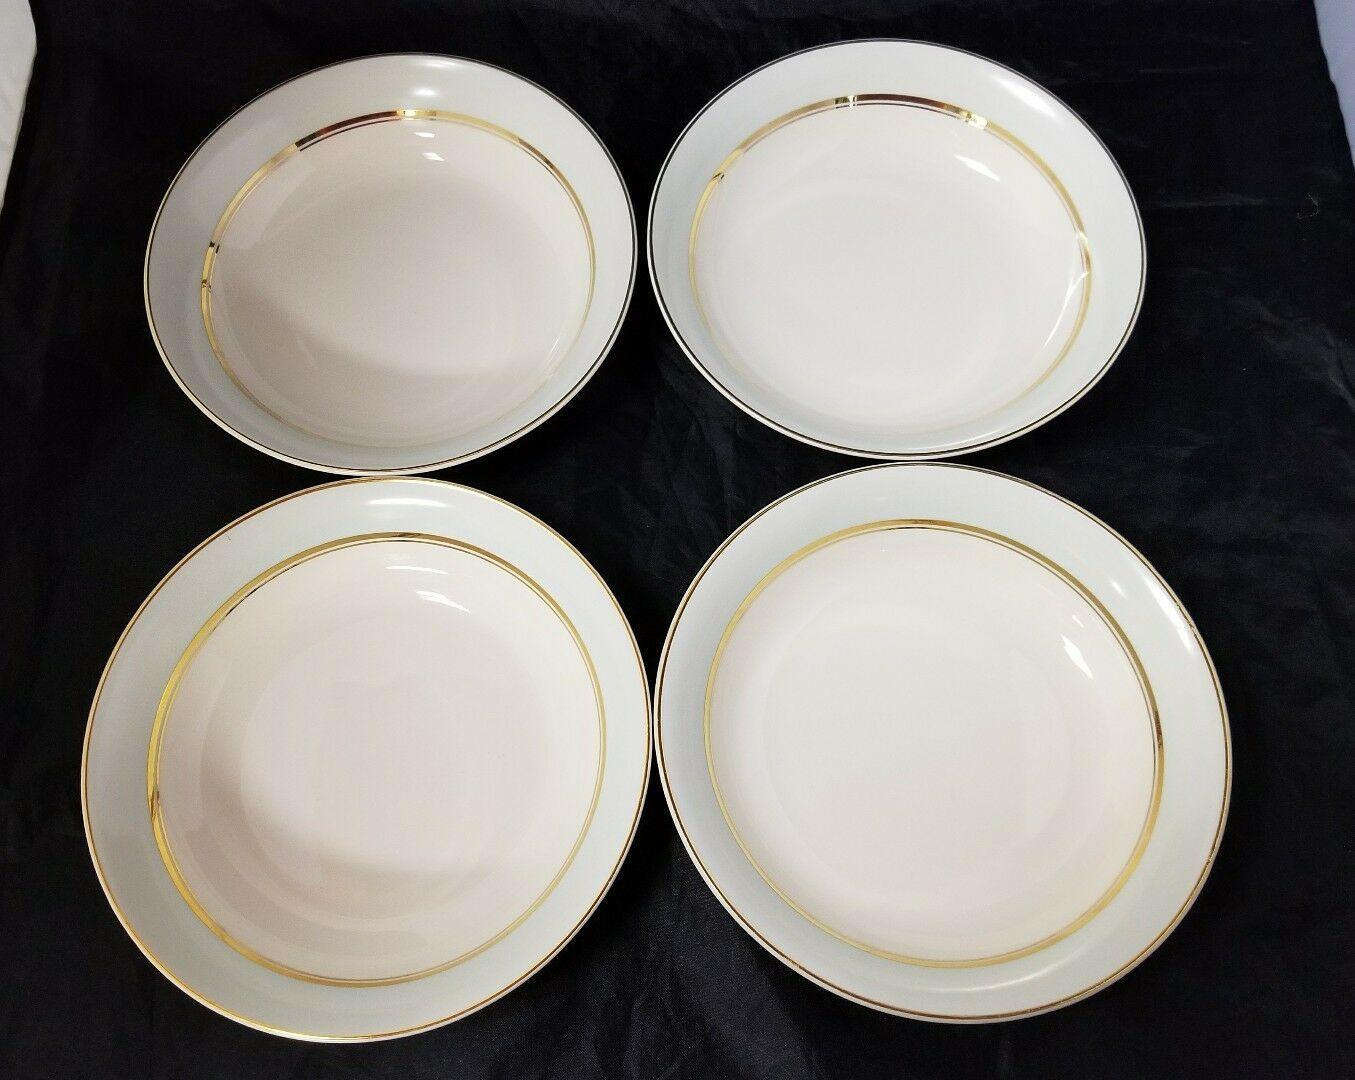 The French Saxon China Co Soup Salad Bowls Set of 4, 22kt Gold, Pottery Made USA image 7